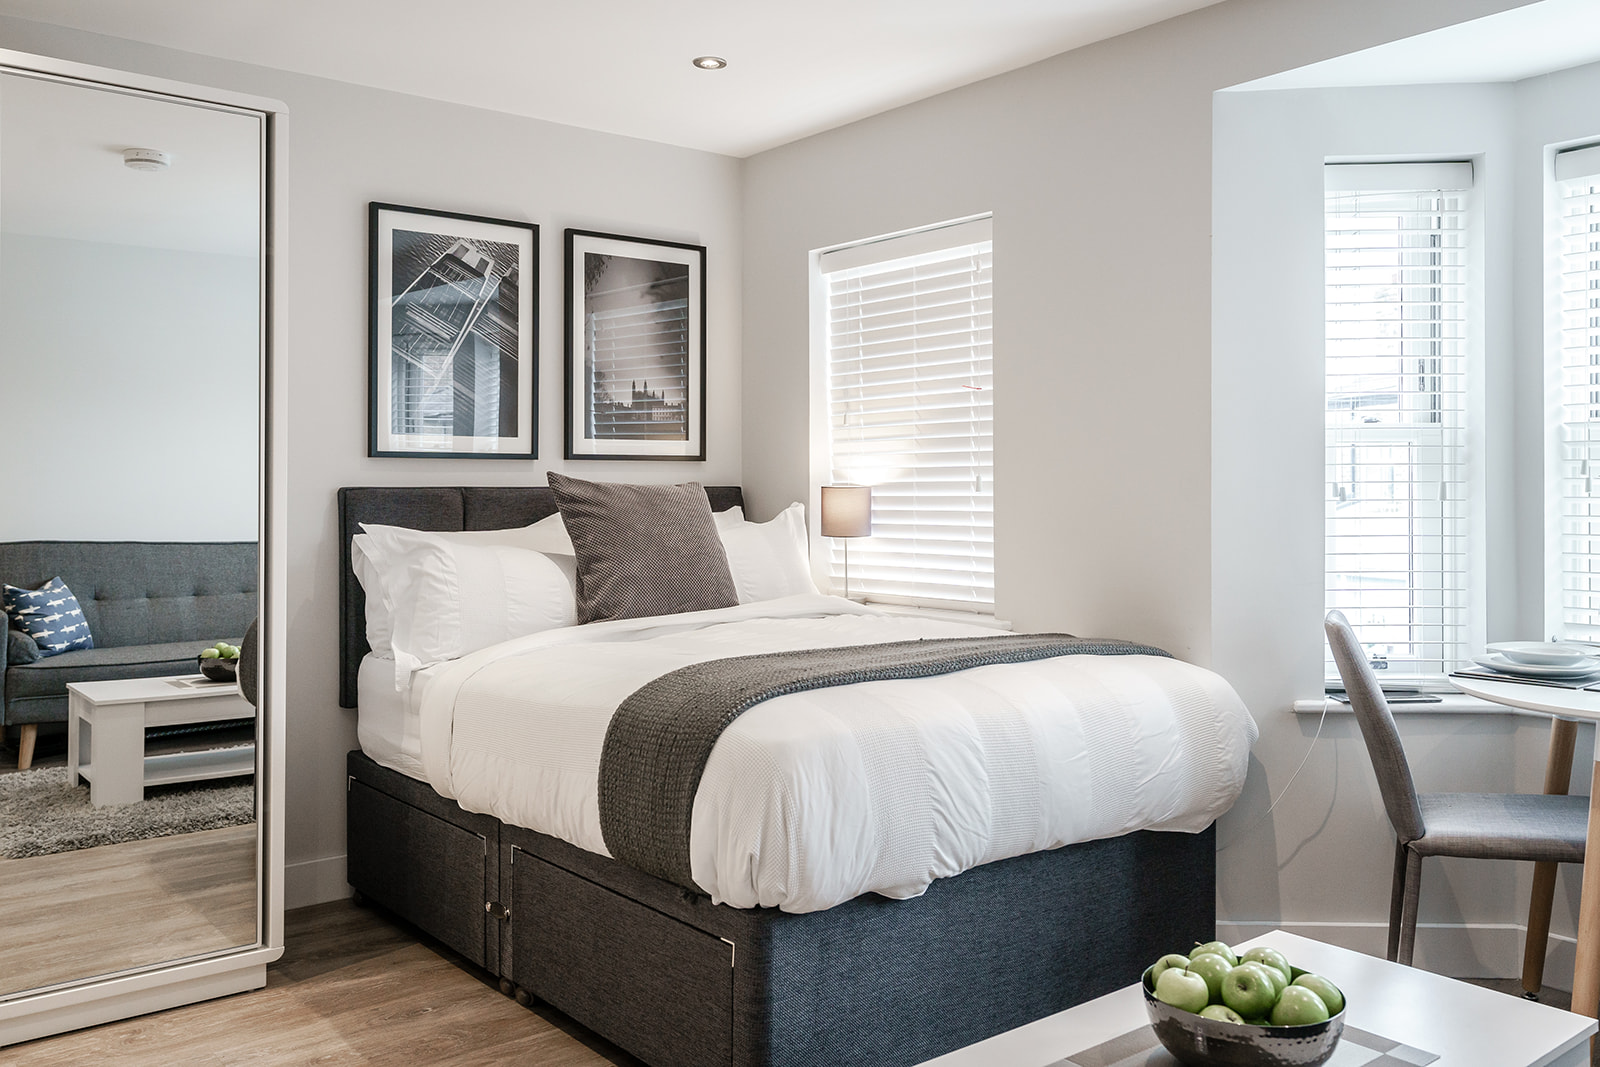 Bedroom at Victoria Road Apartments - Citybase Apartments